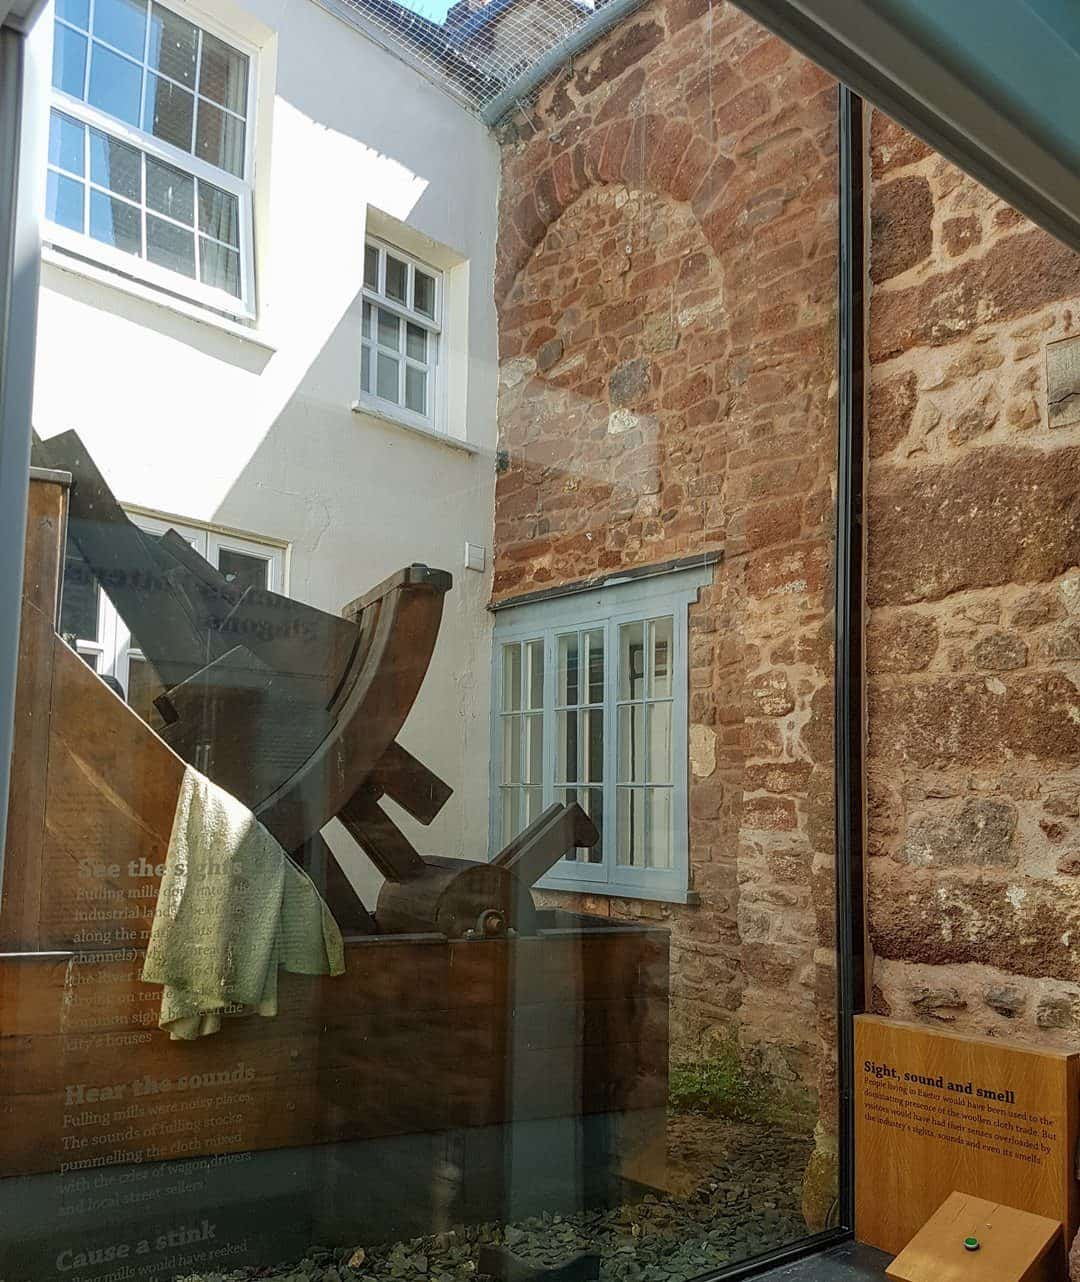 View of Old church window and fulling stocks at Tuckers Hall in Exeter.